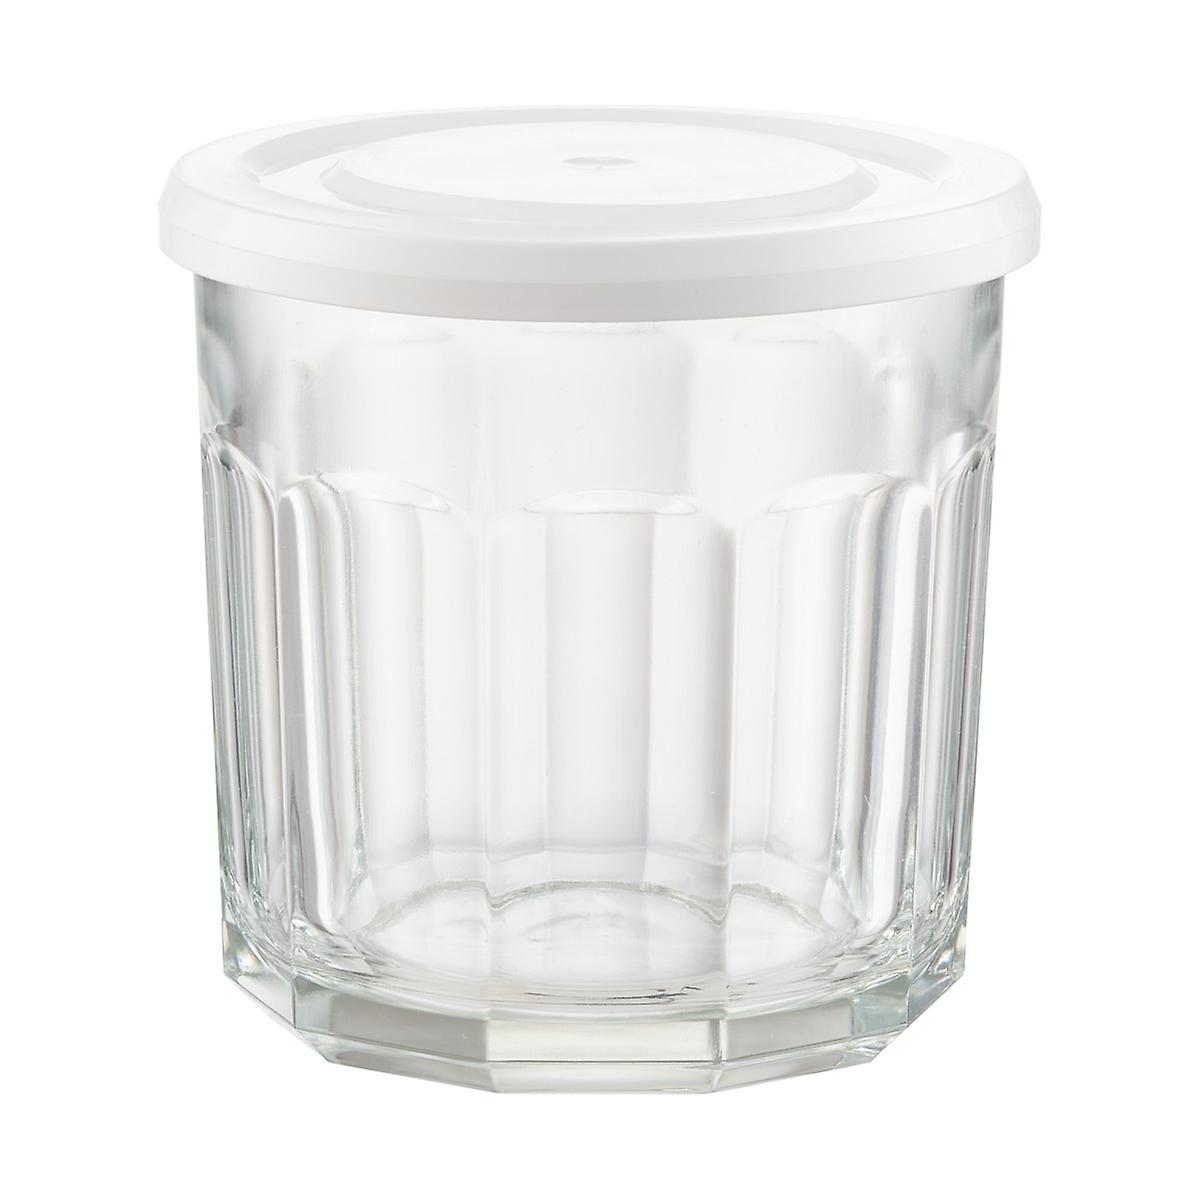 14 oz. Glasses with Spill-Resistant Lids